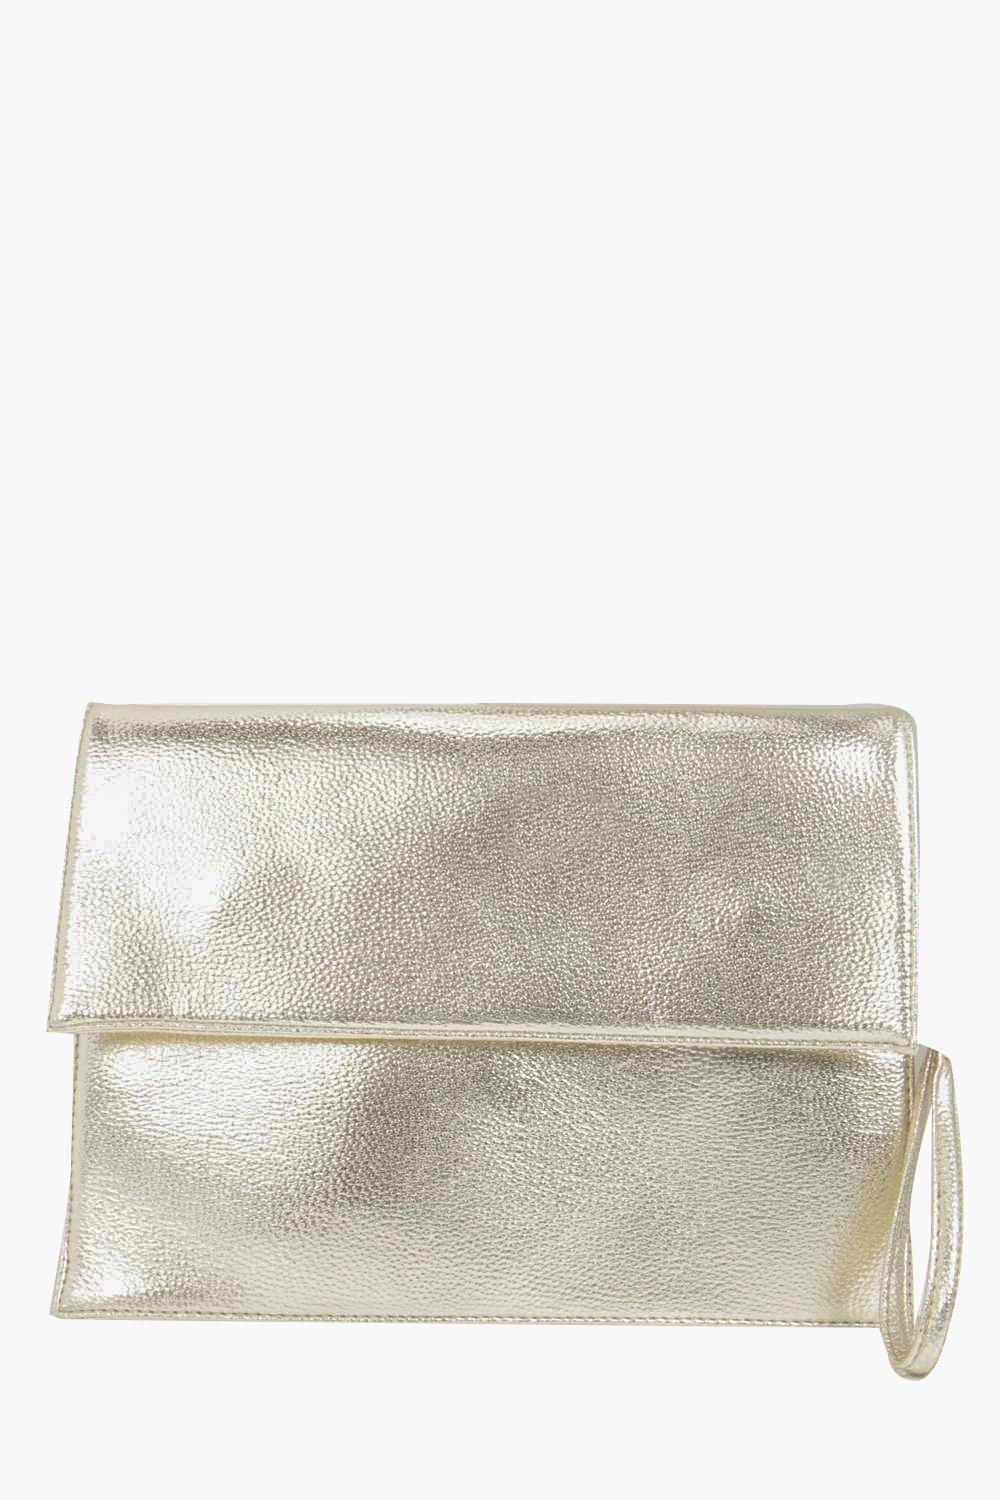 Oversized Clutch Bag gold